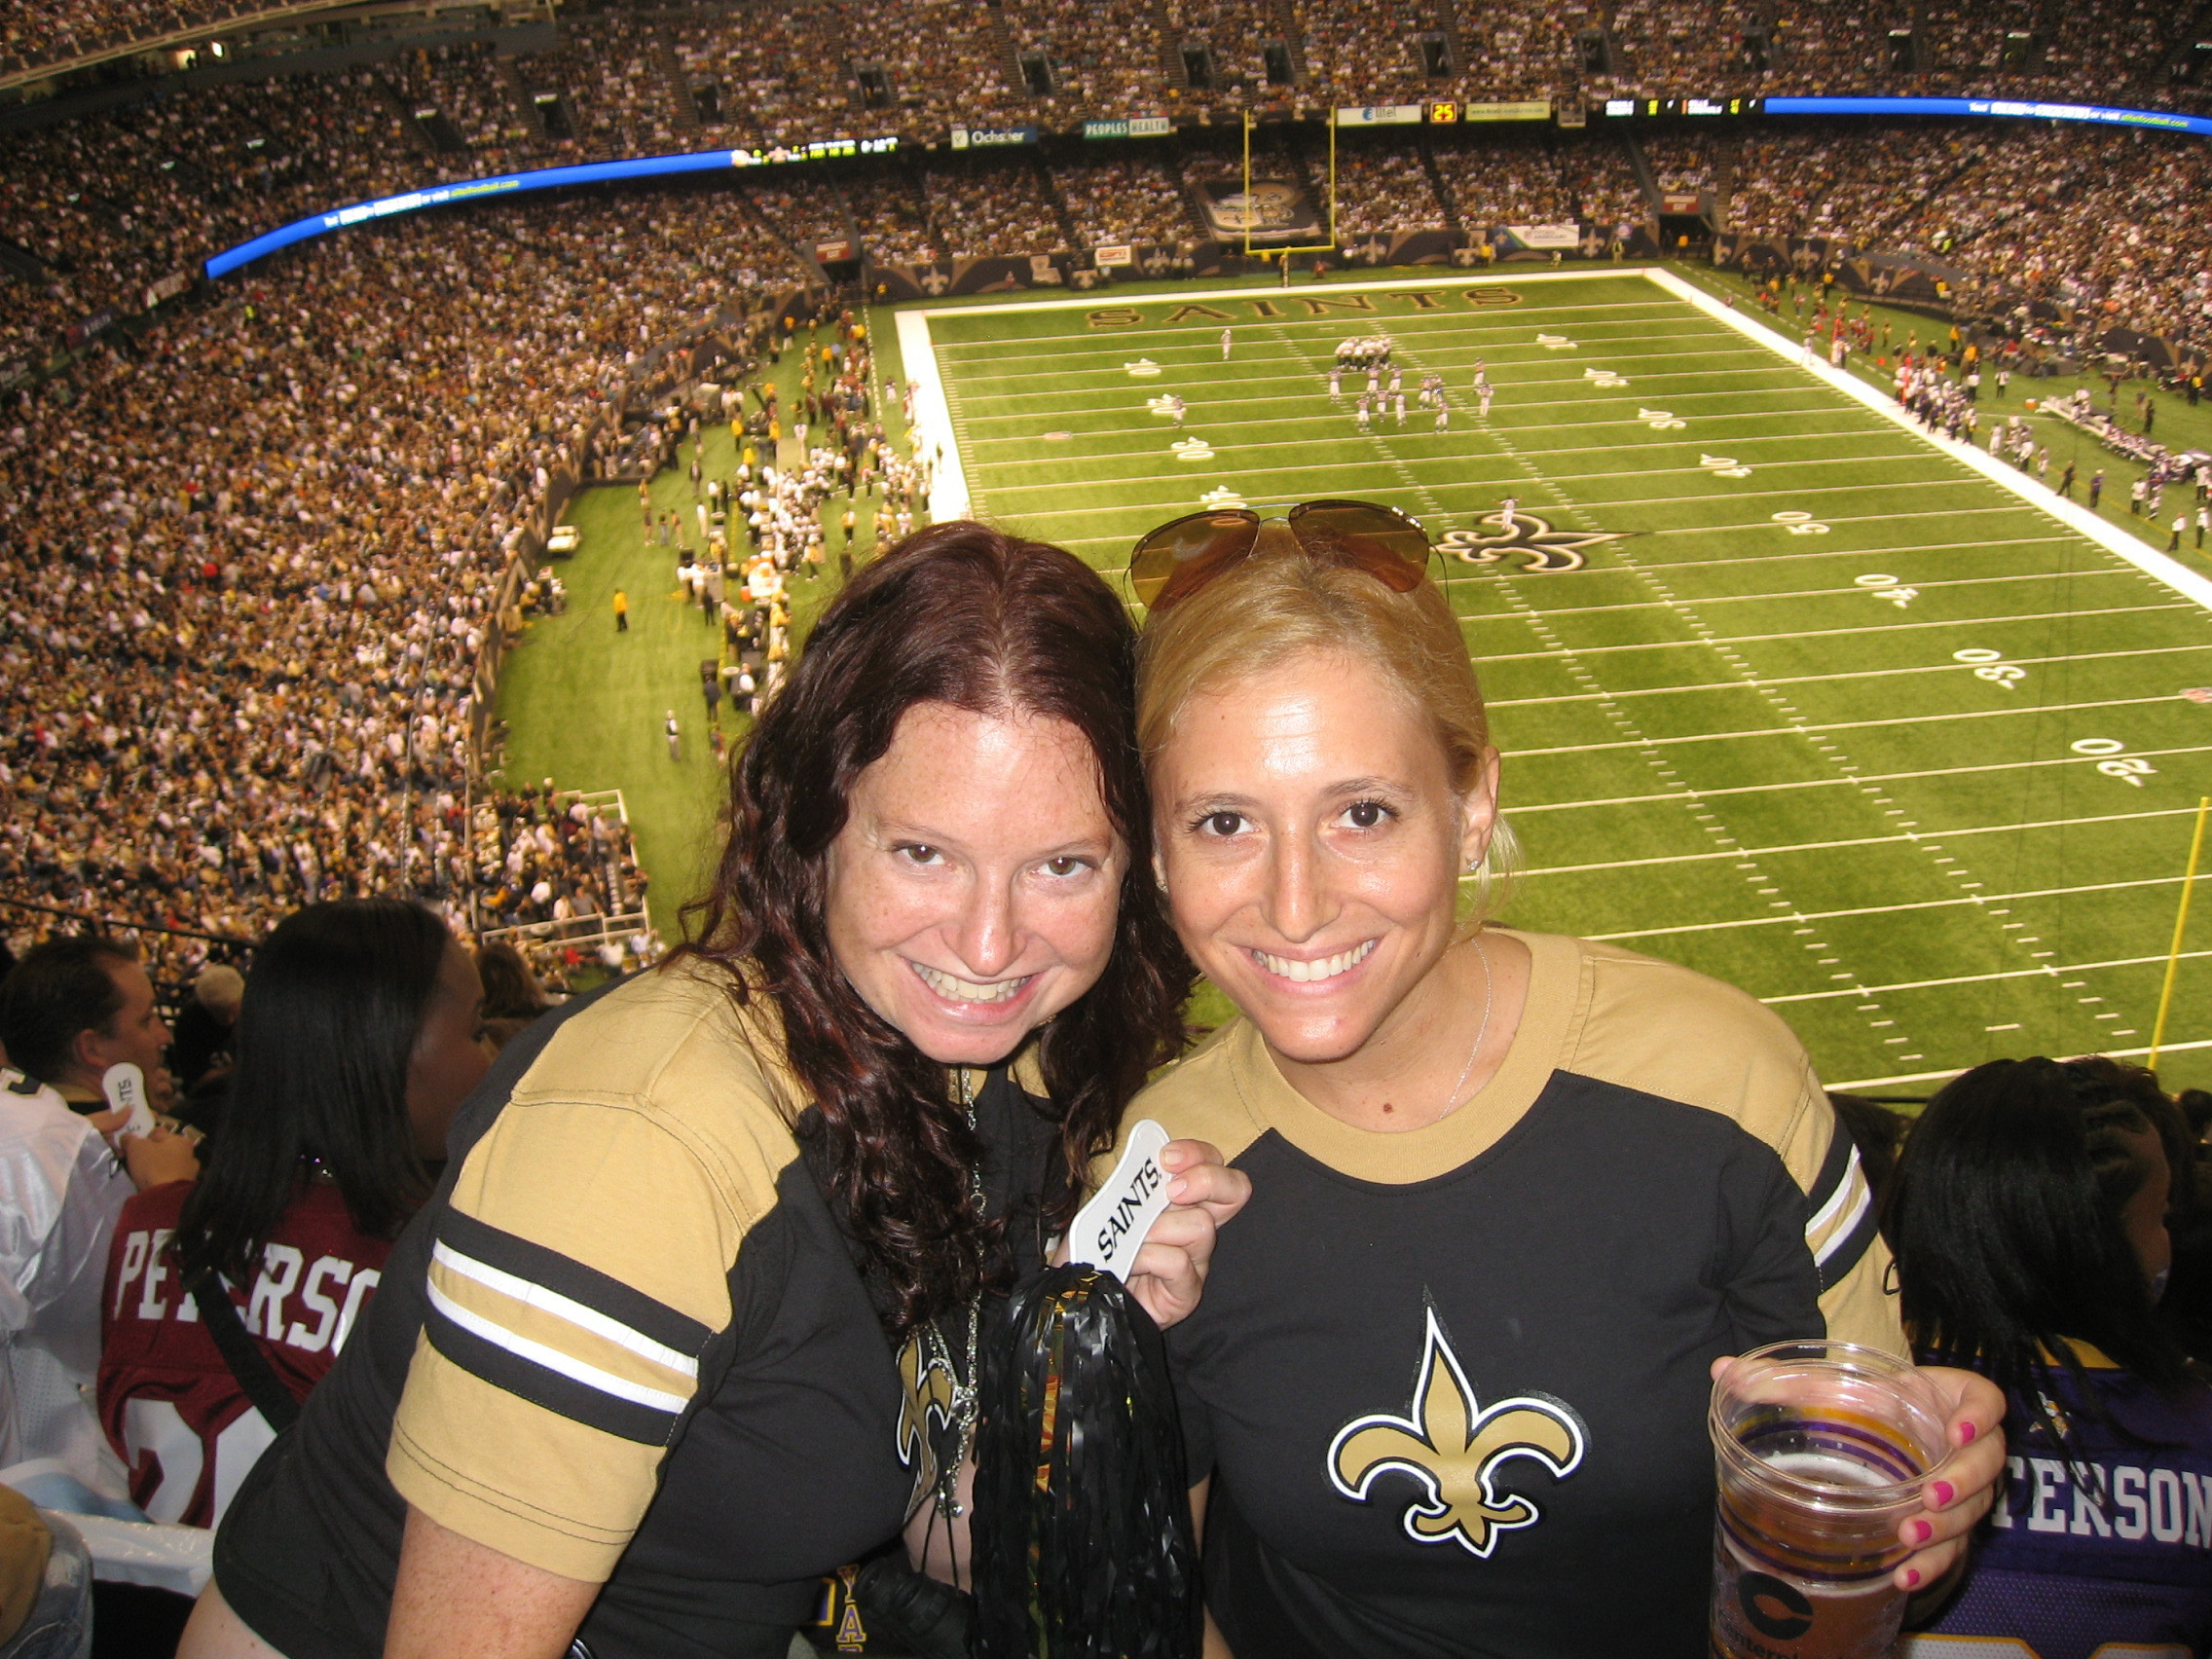 Bryna Stiefel and Jordan Zucker at the MNF Saints game - WHO DAT?!?!